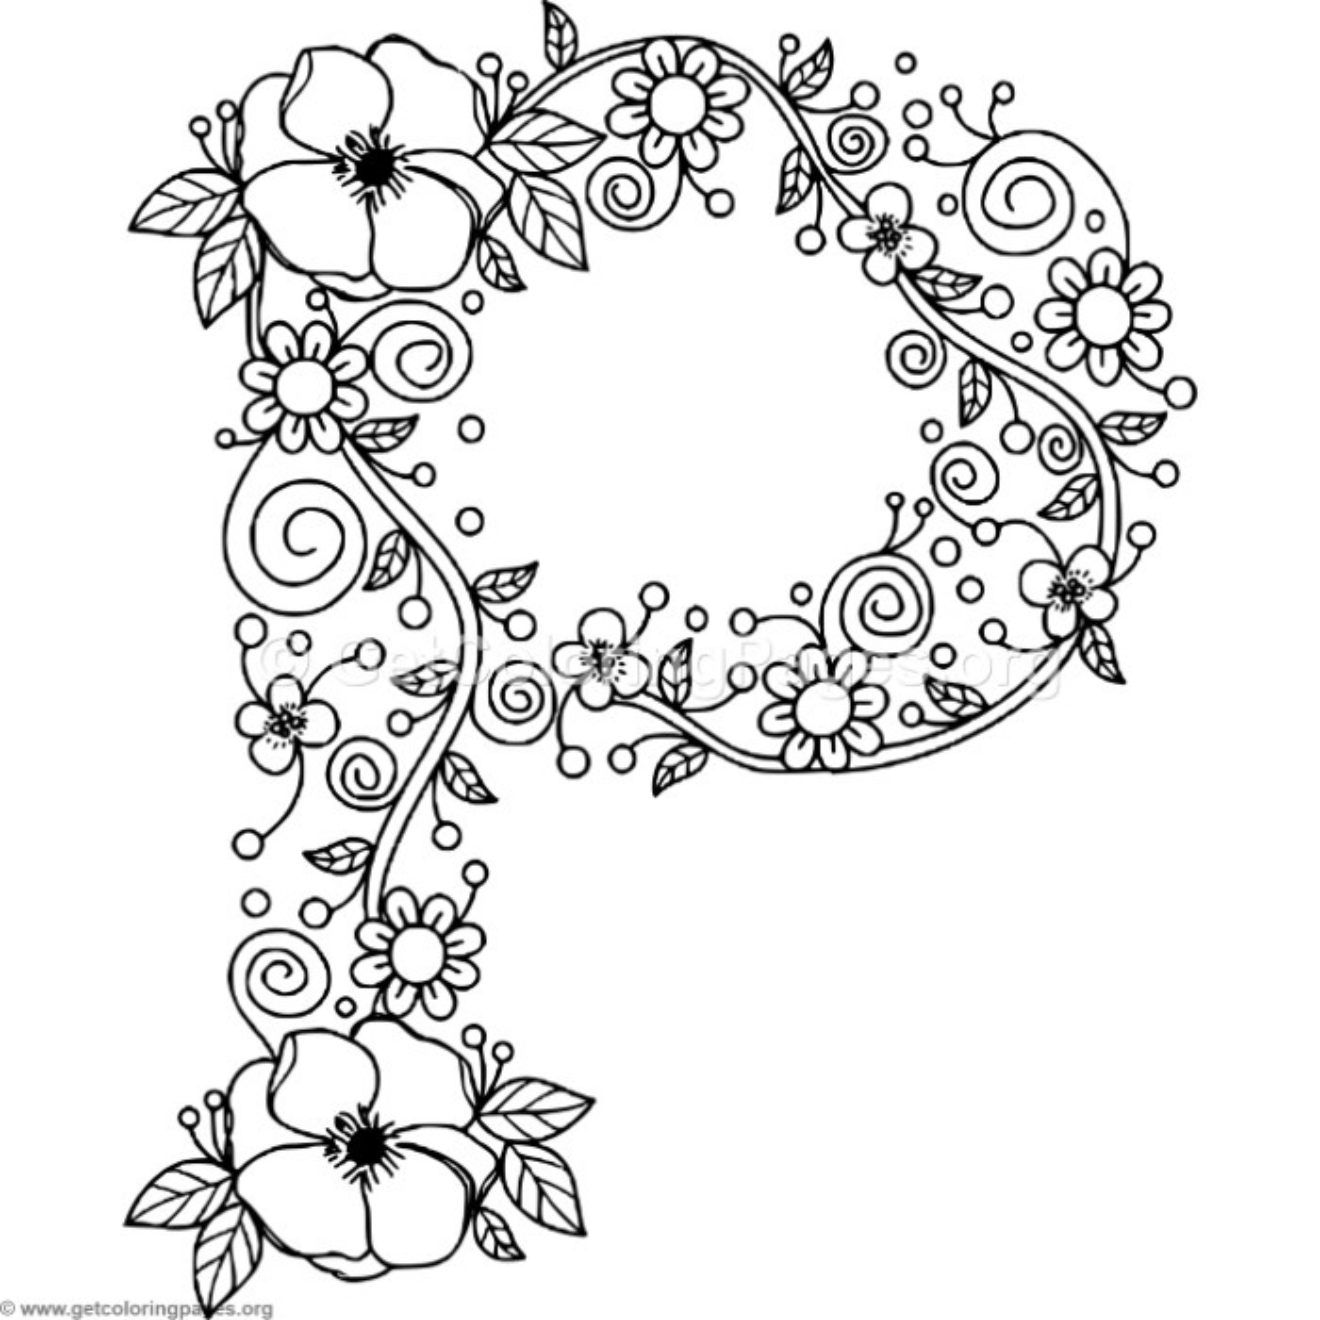 floral alphabet coloring pages – Page 2 – GetColoringPages.org ...